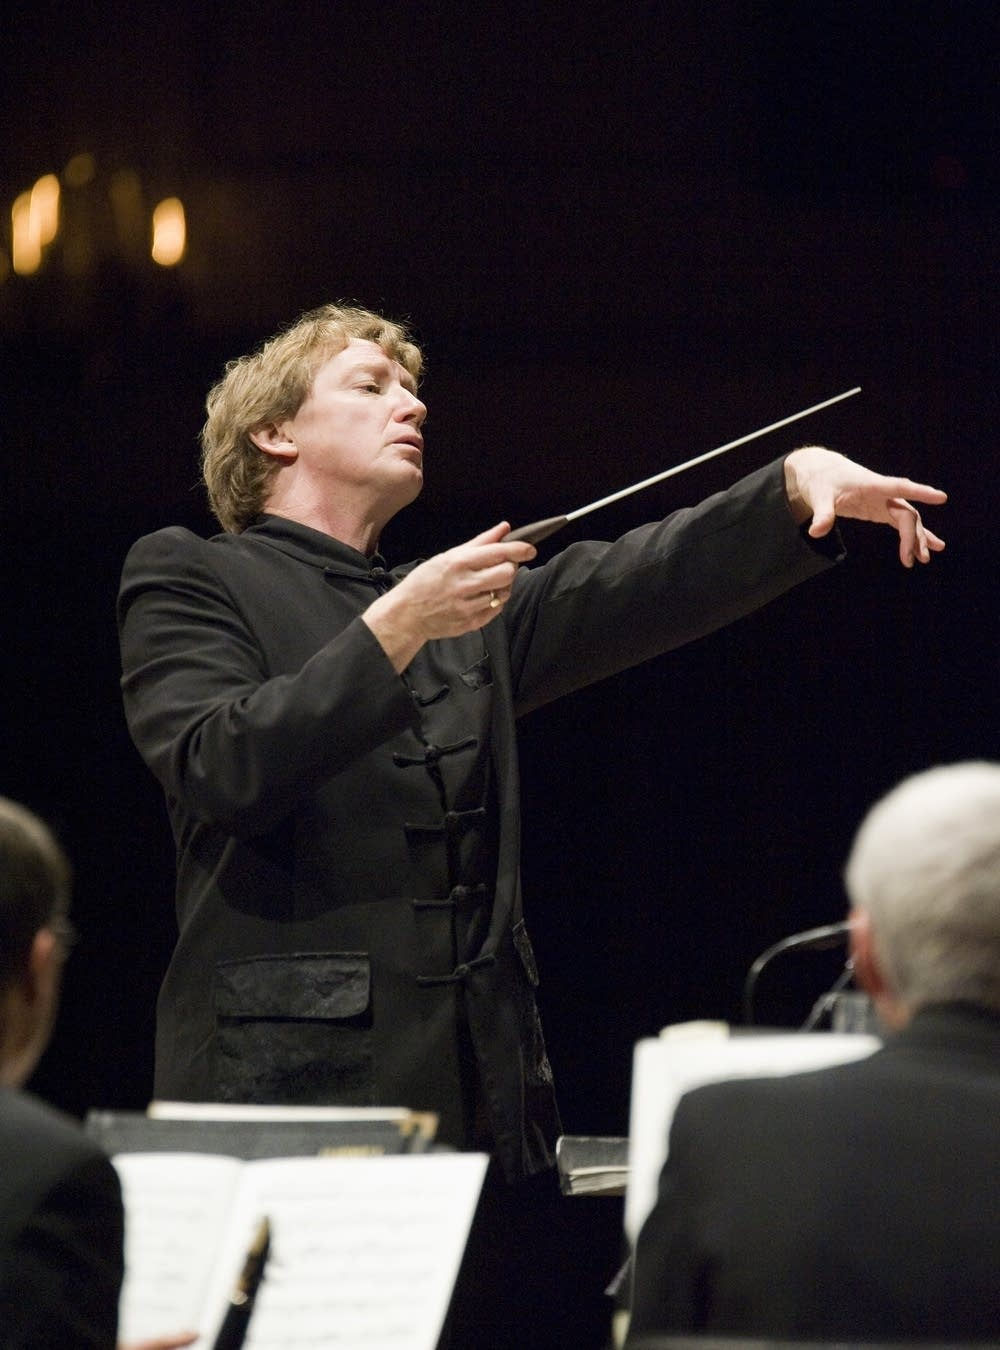 Douglas Boyd conducts the SPCO